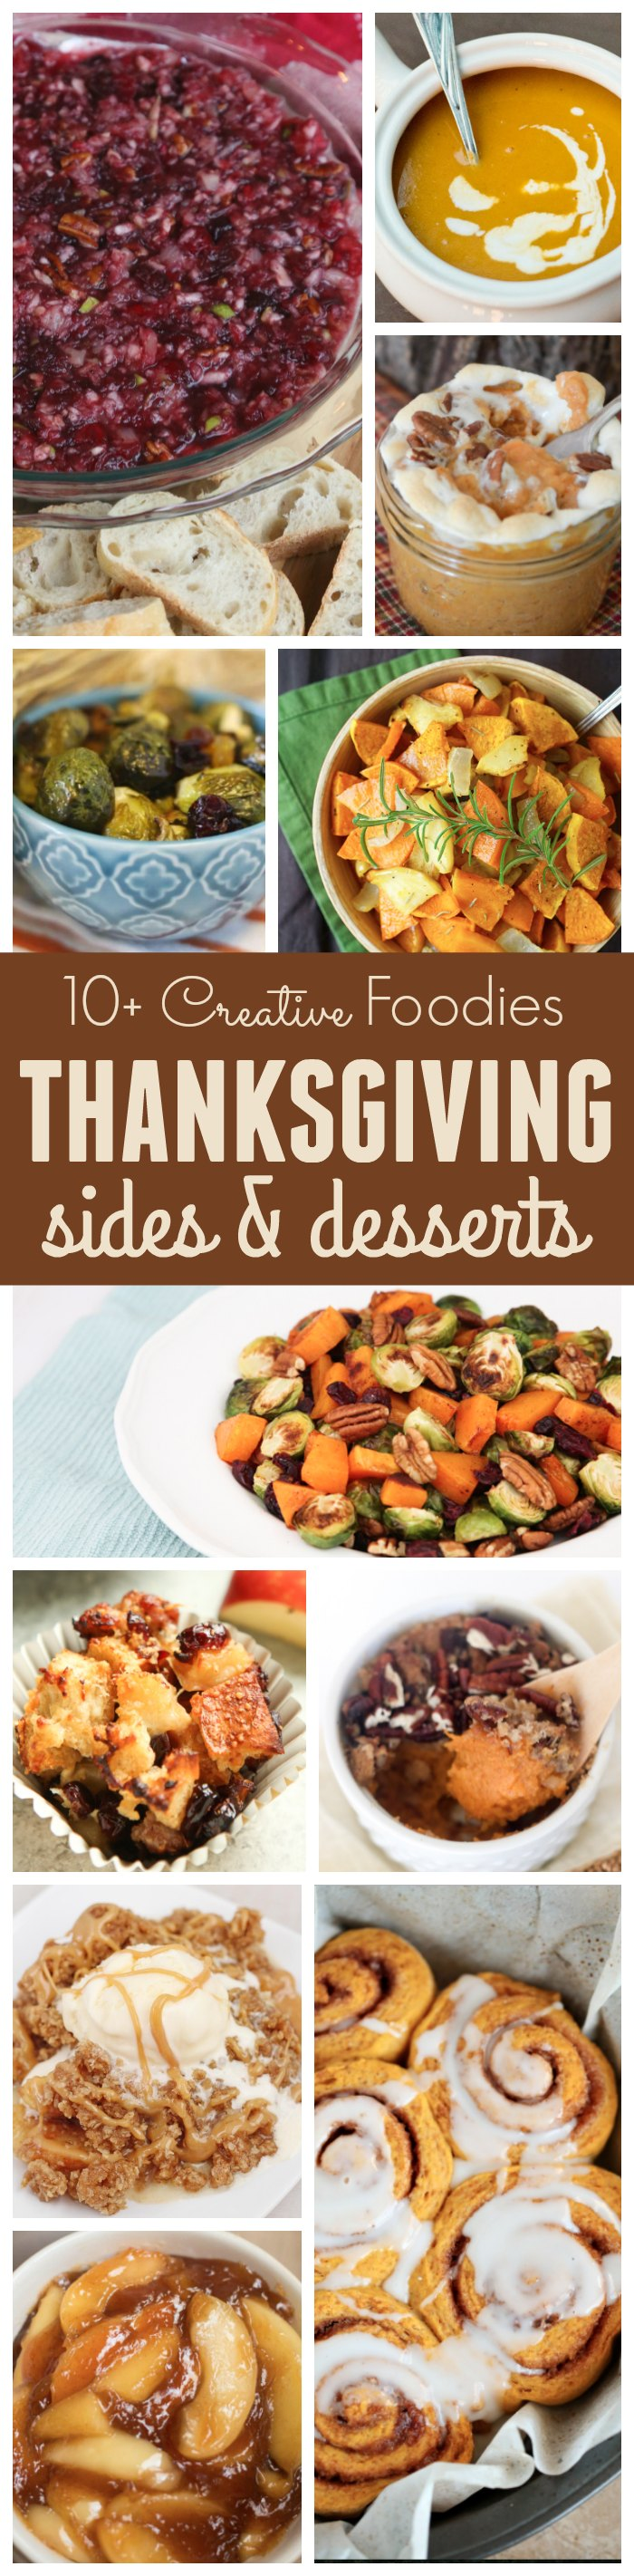 10+ Thanksgiving Sides & Desserts